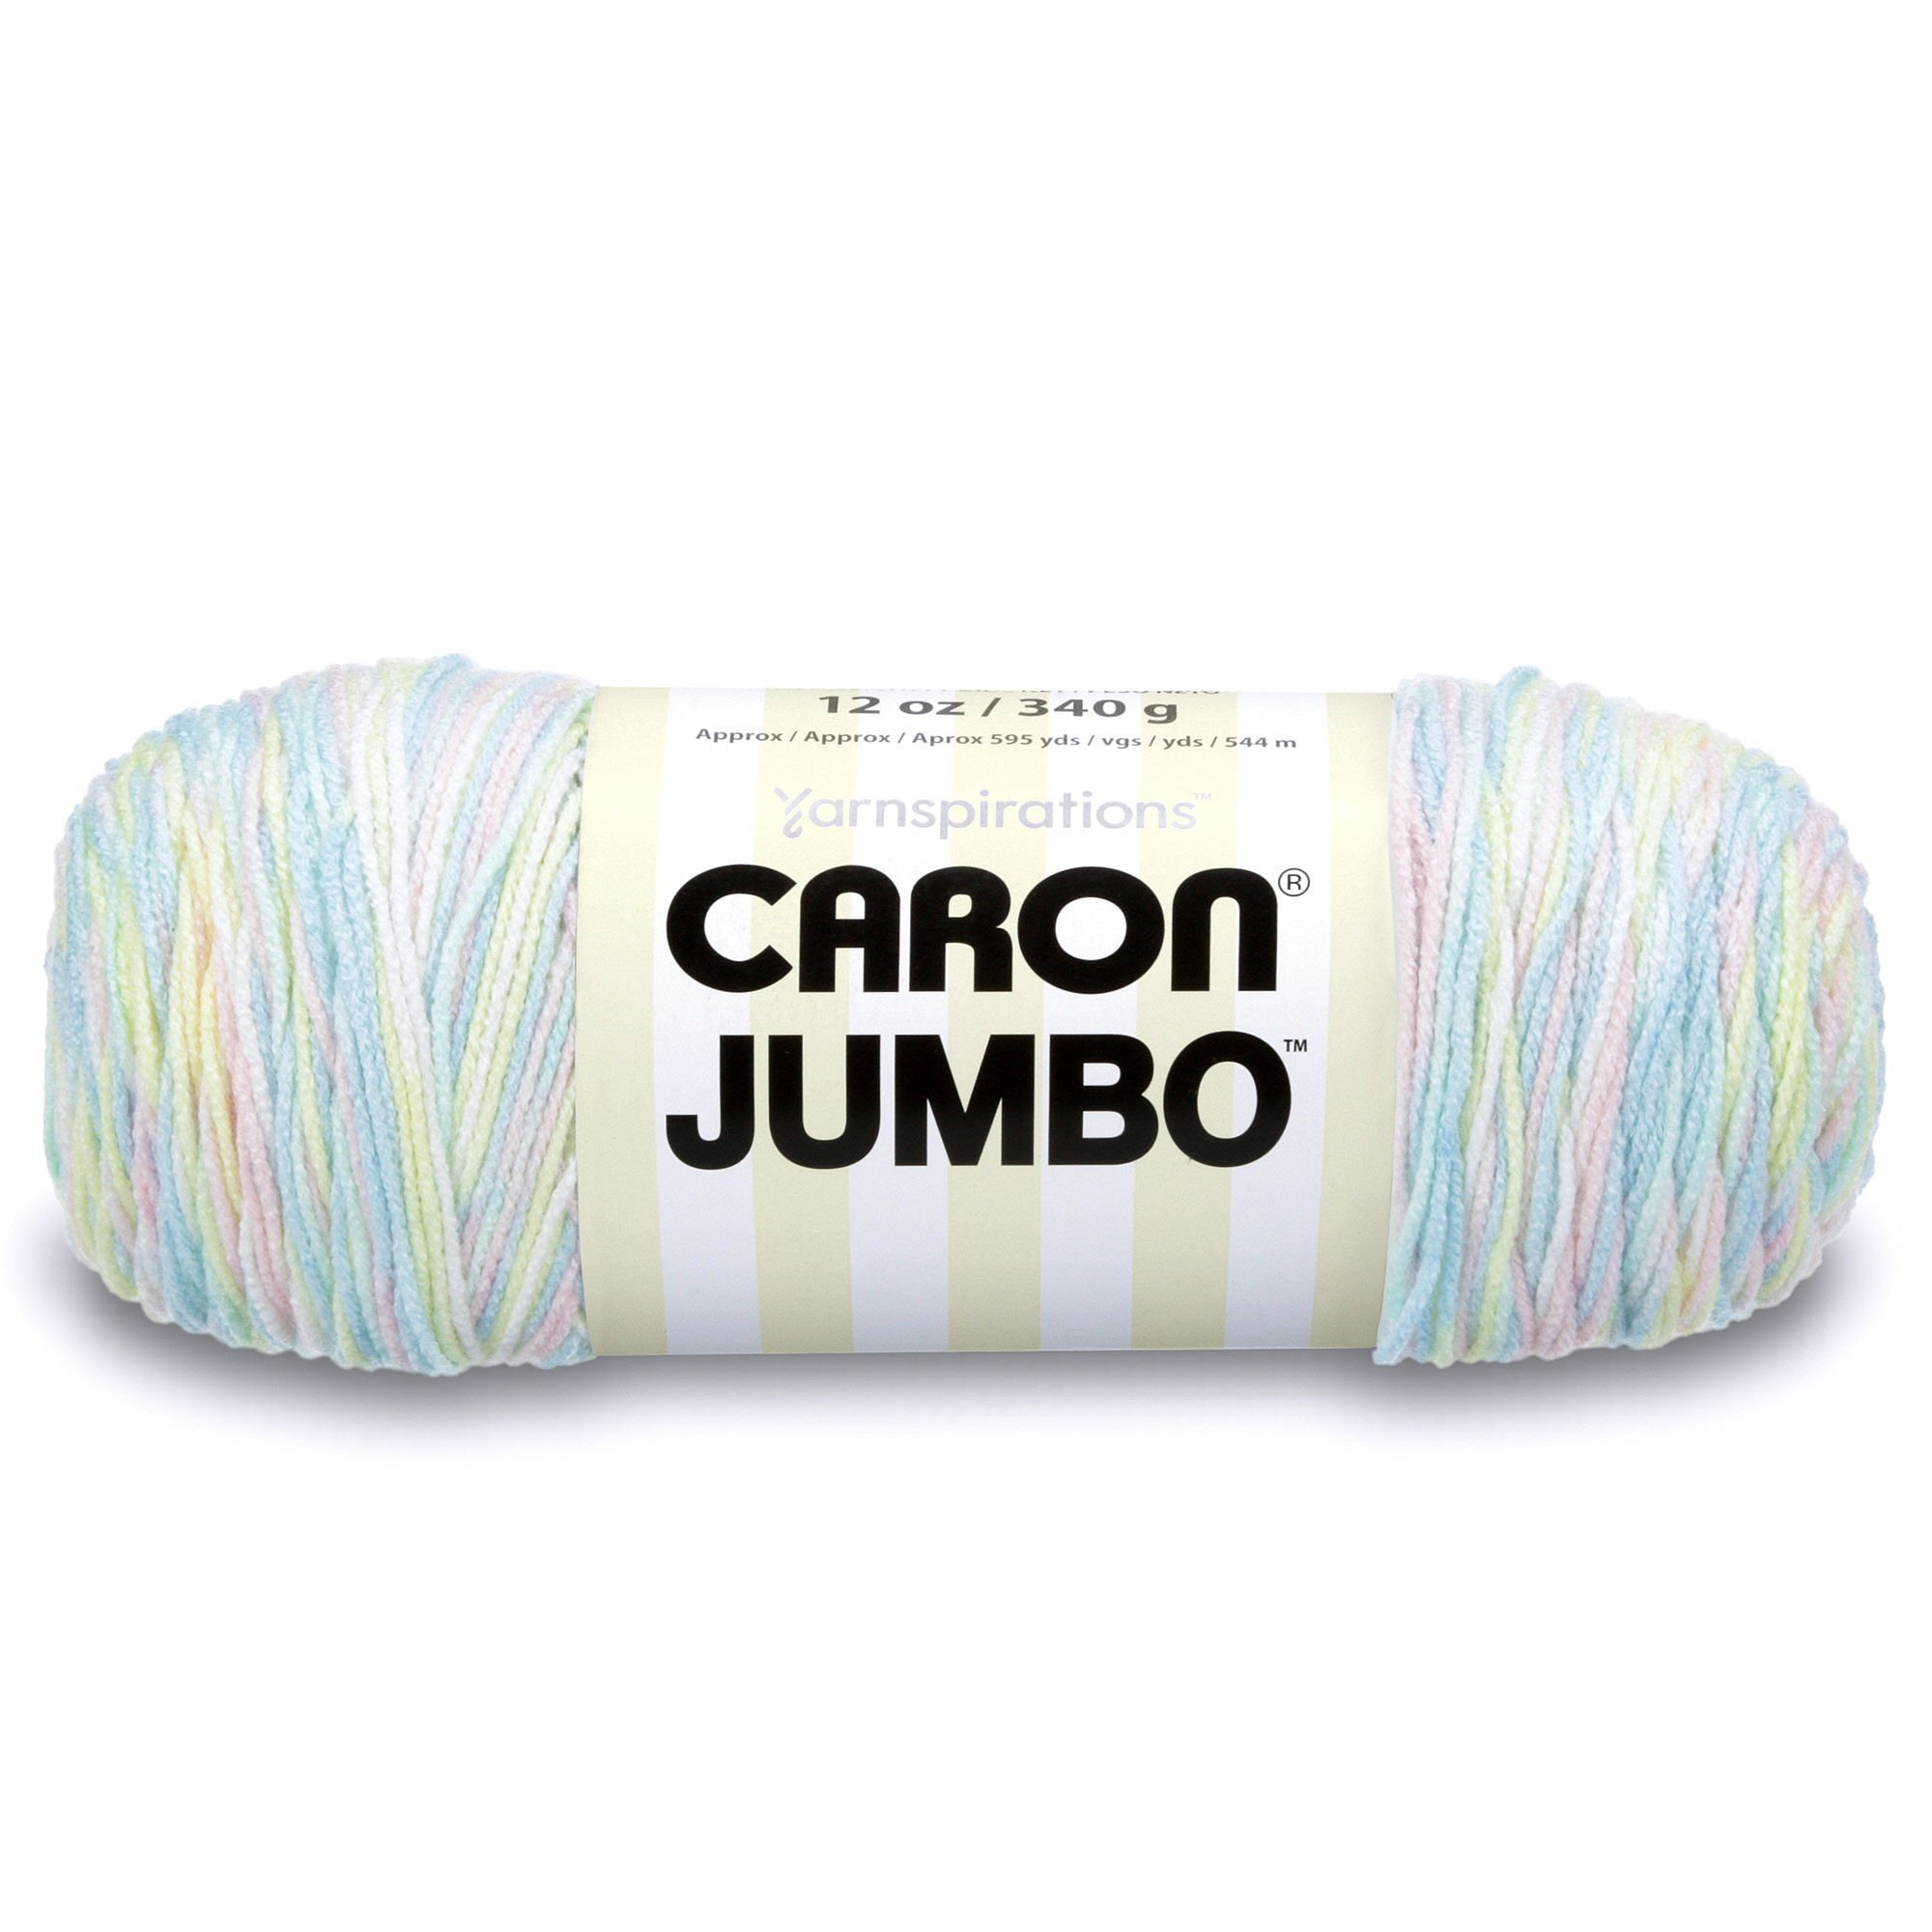 Caron Jumbo Ombre Yarn, 12 oz, Baby Rainbow, 1 Ball